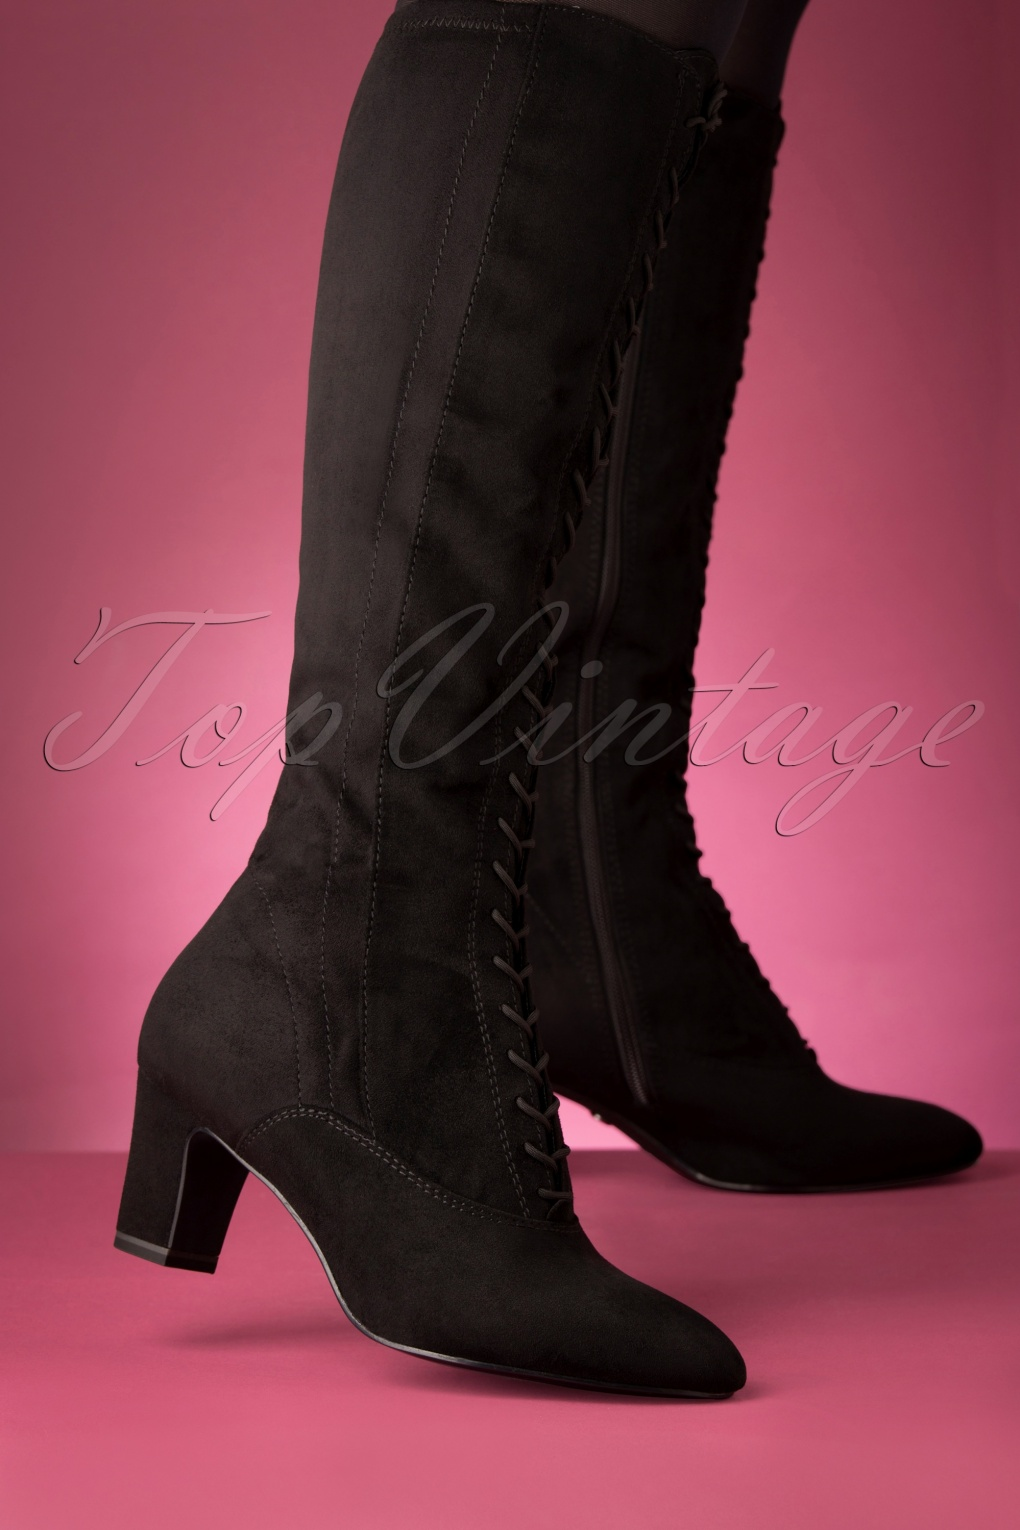 Vintage Boots- Winter Rain and Snow Boots 70s Lori Suedine Boots in Black £68.88 AT vintagedancer.com